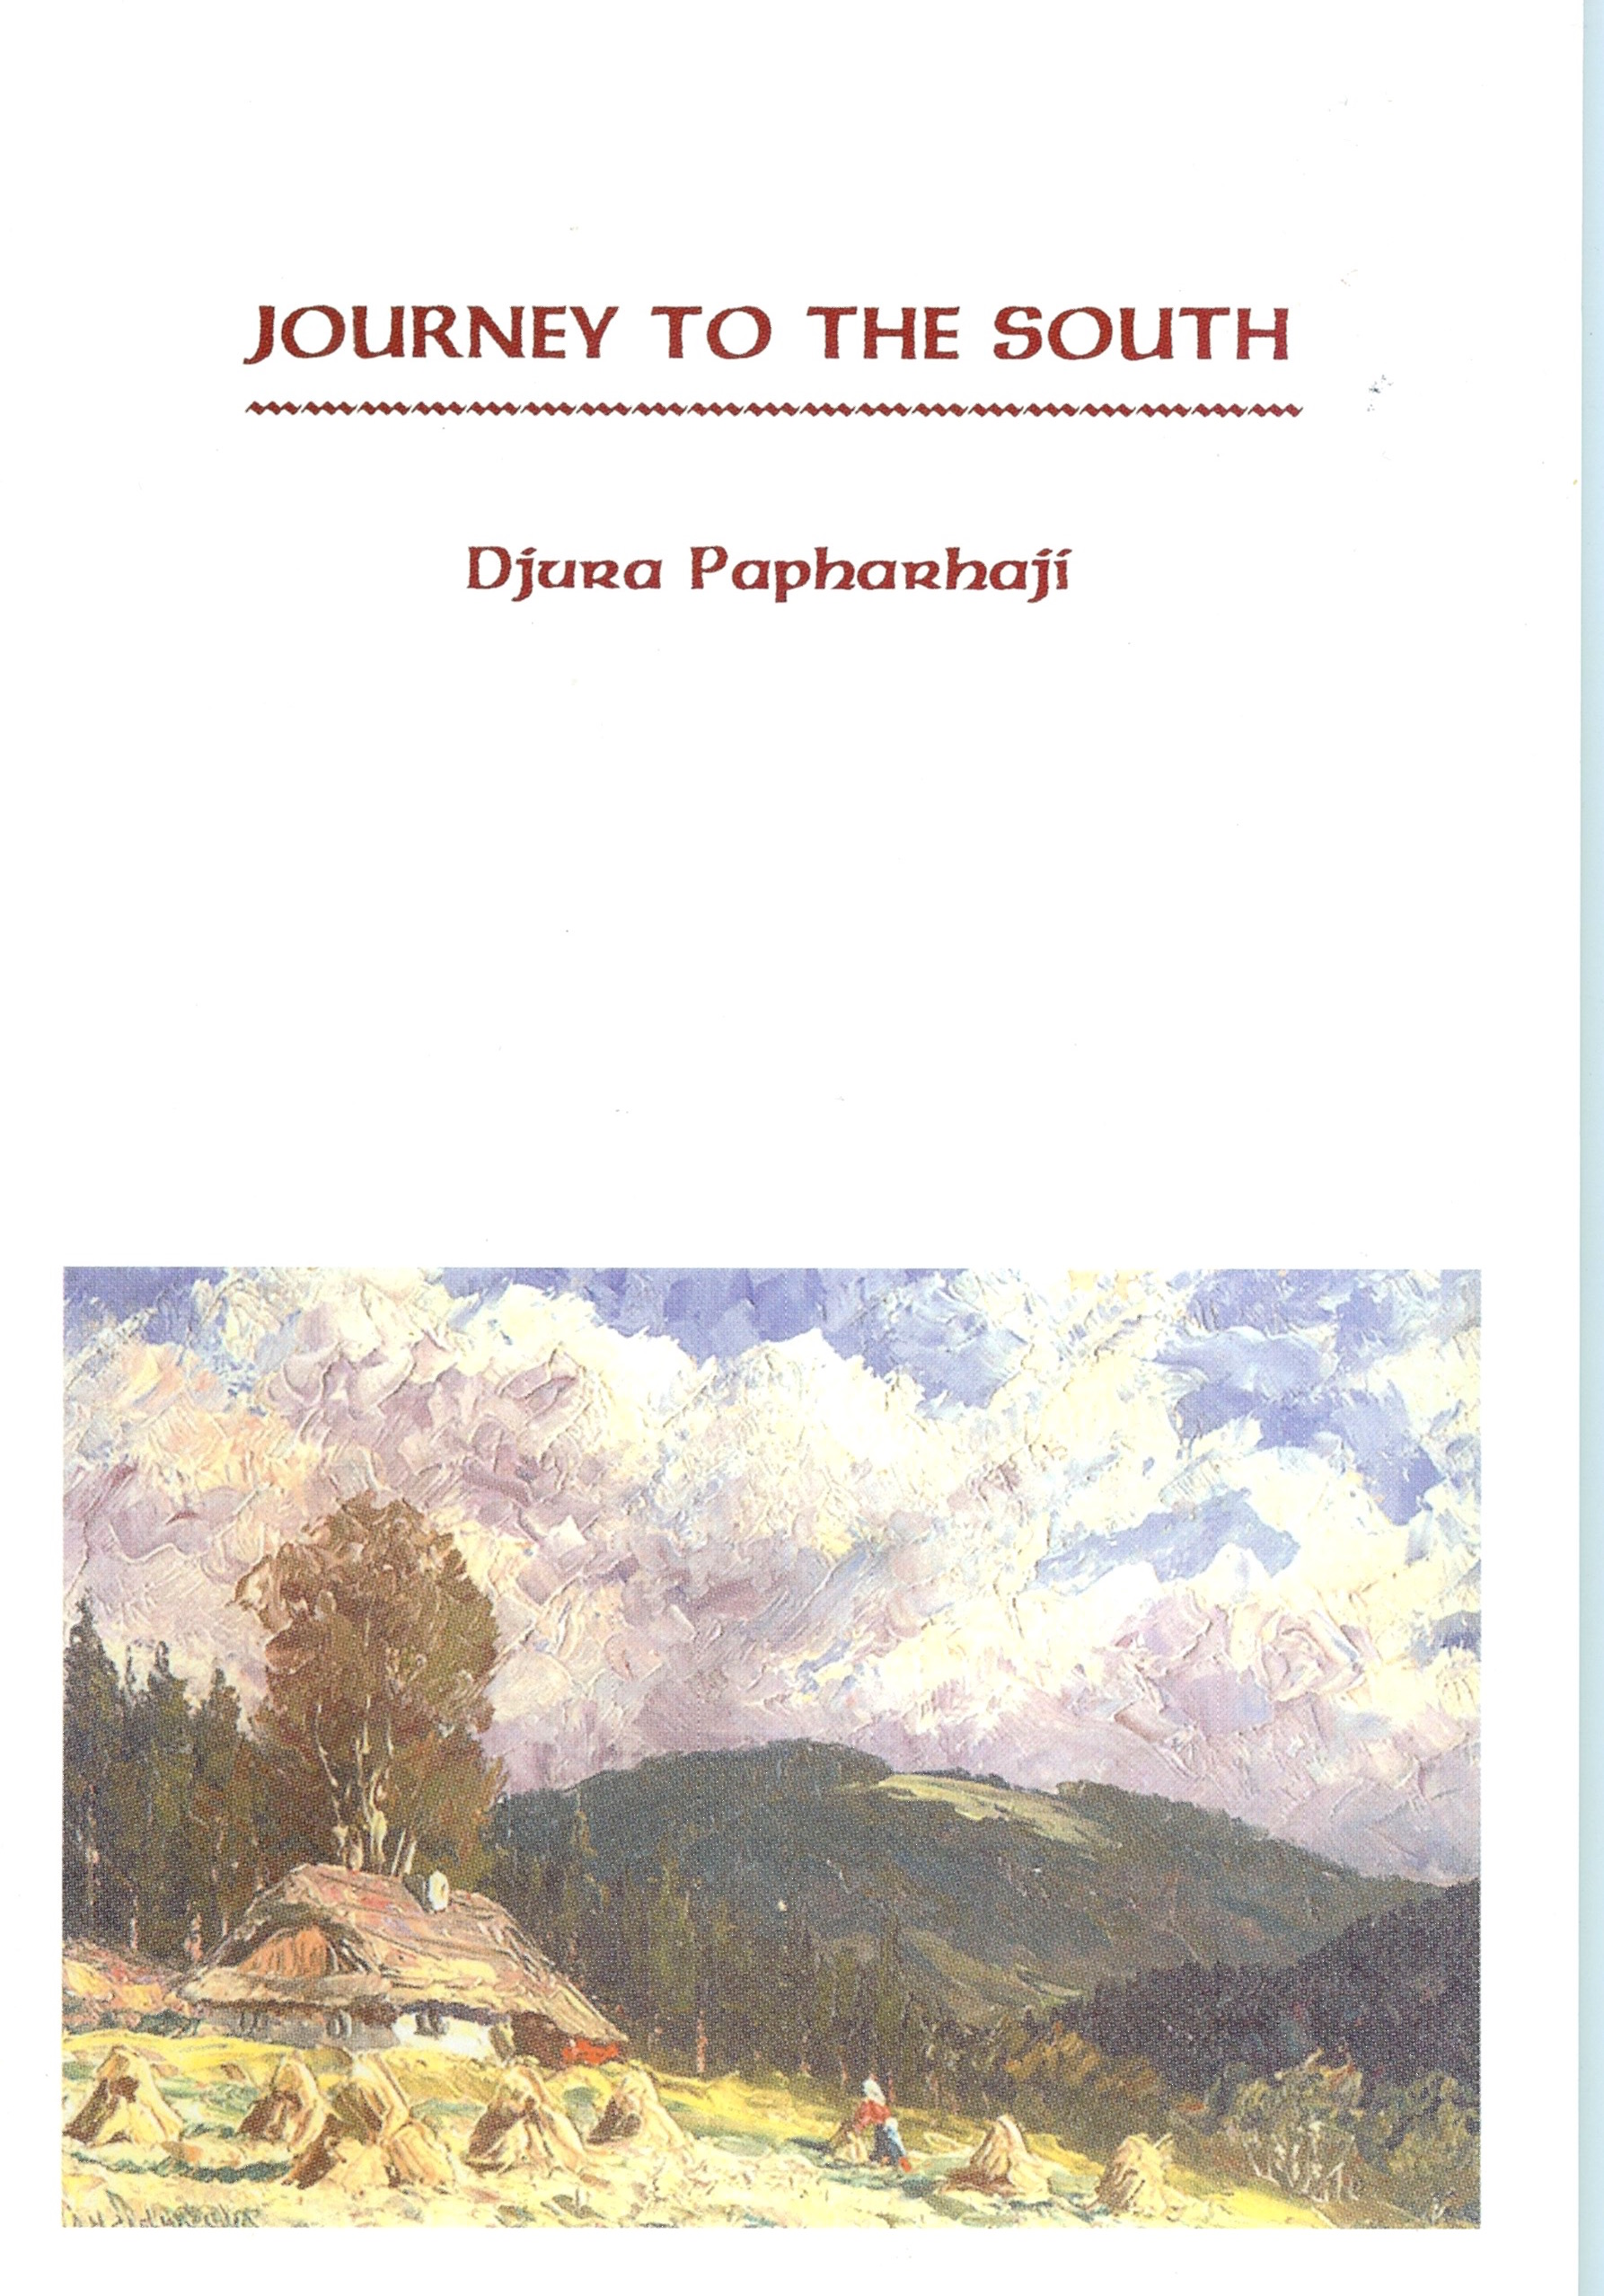 Djura Papharhaji - Journey to the South - Poetry